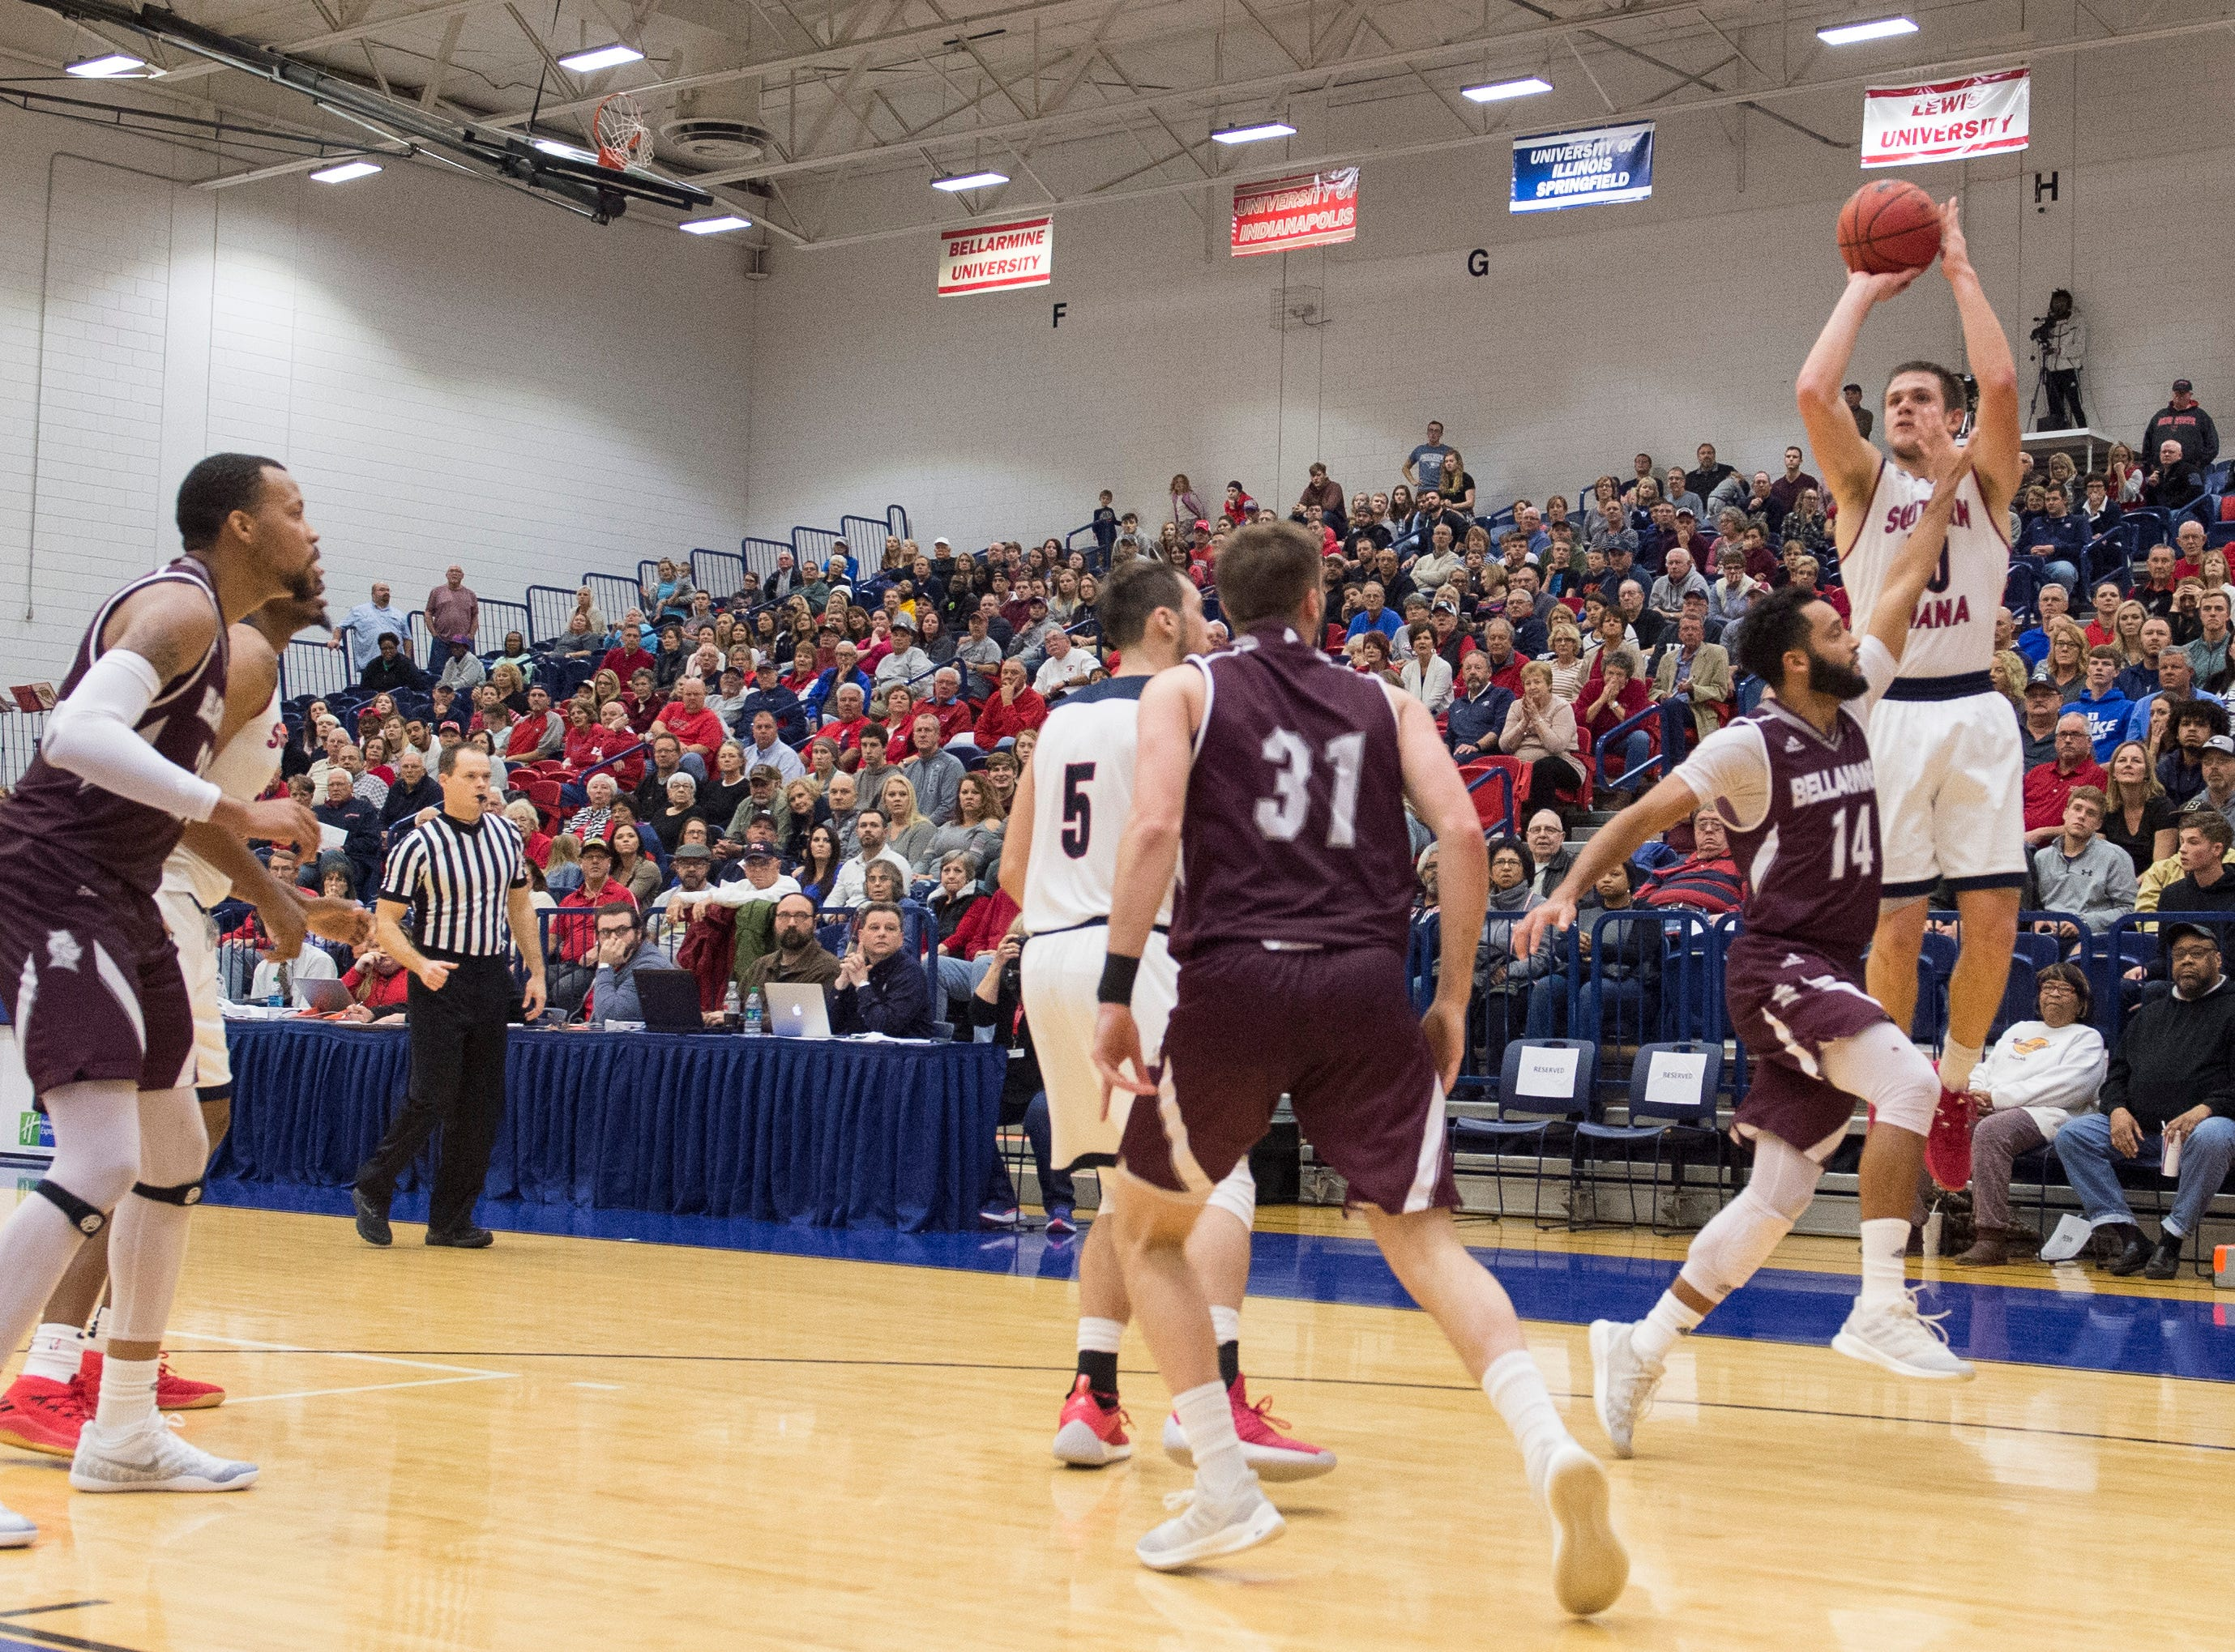 USI's Alex Stein (20) takes a 3-point shot during the USI vs Bellarmine game at the PAC Saturday, Dec. 1, 2018.